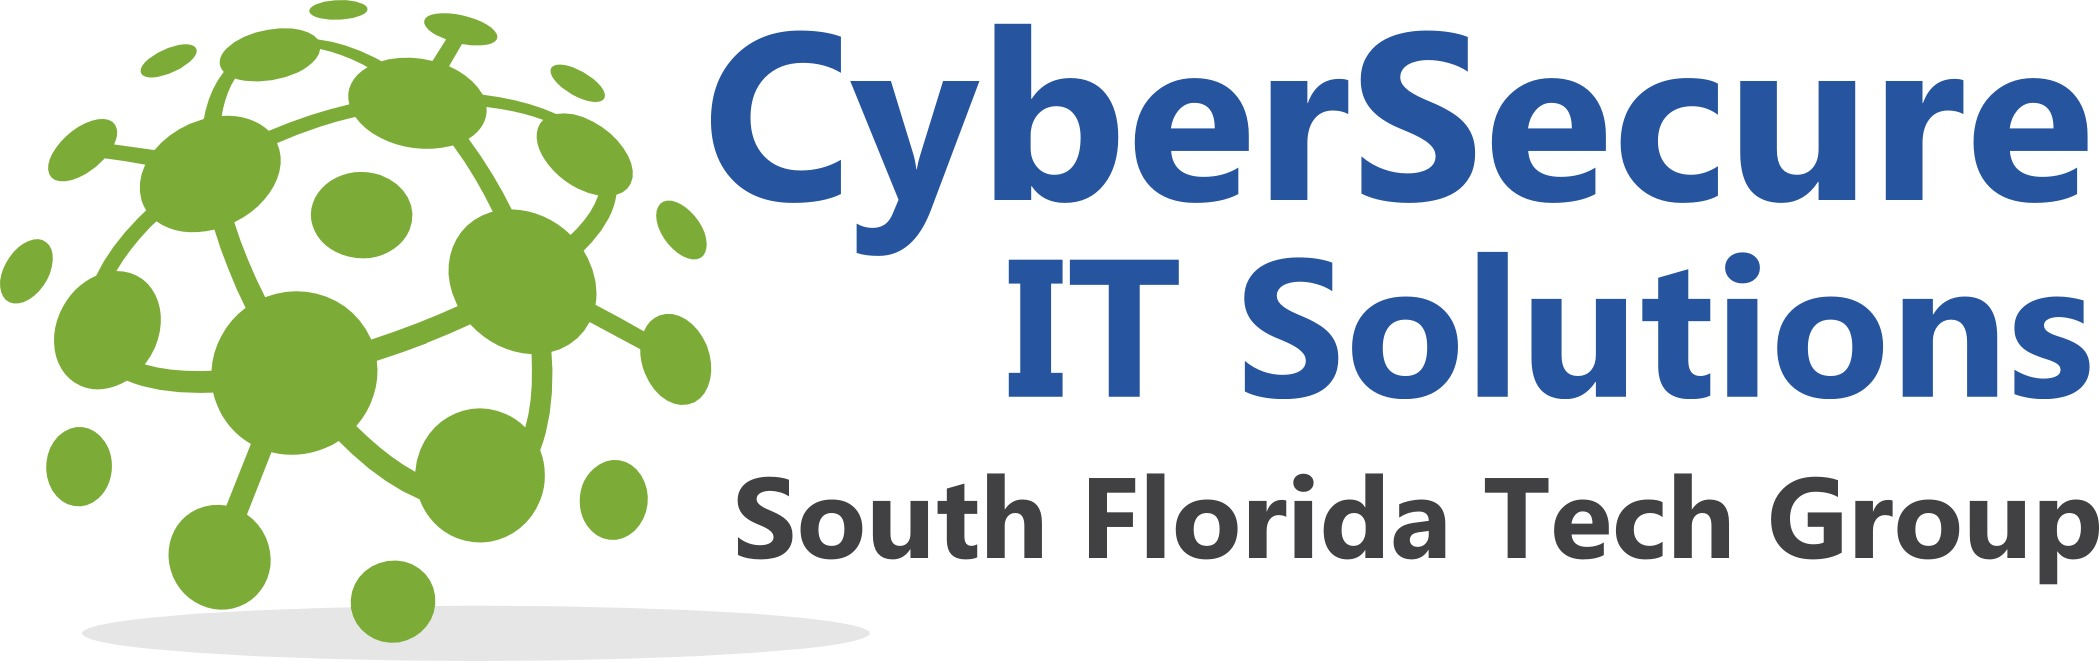 CyberSecure IT Solutions (formerly South Florida Tech Group) reviews | 780 5th Ave S - Naples FL